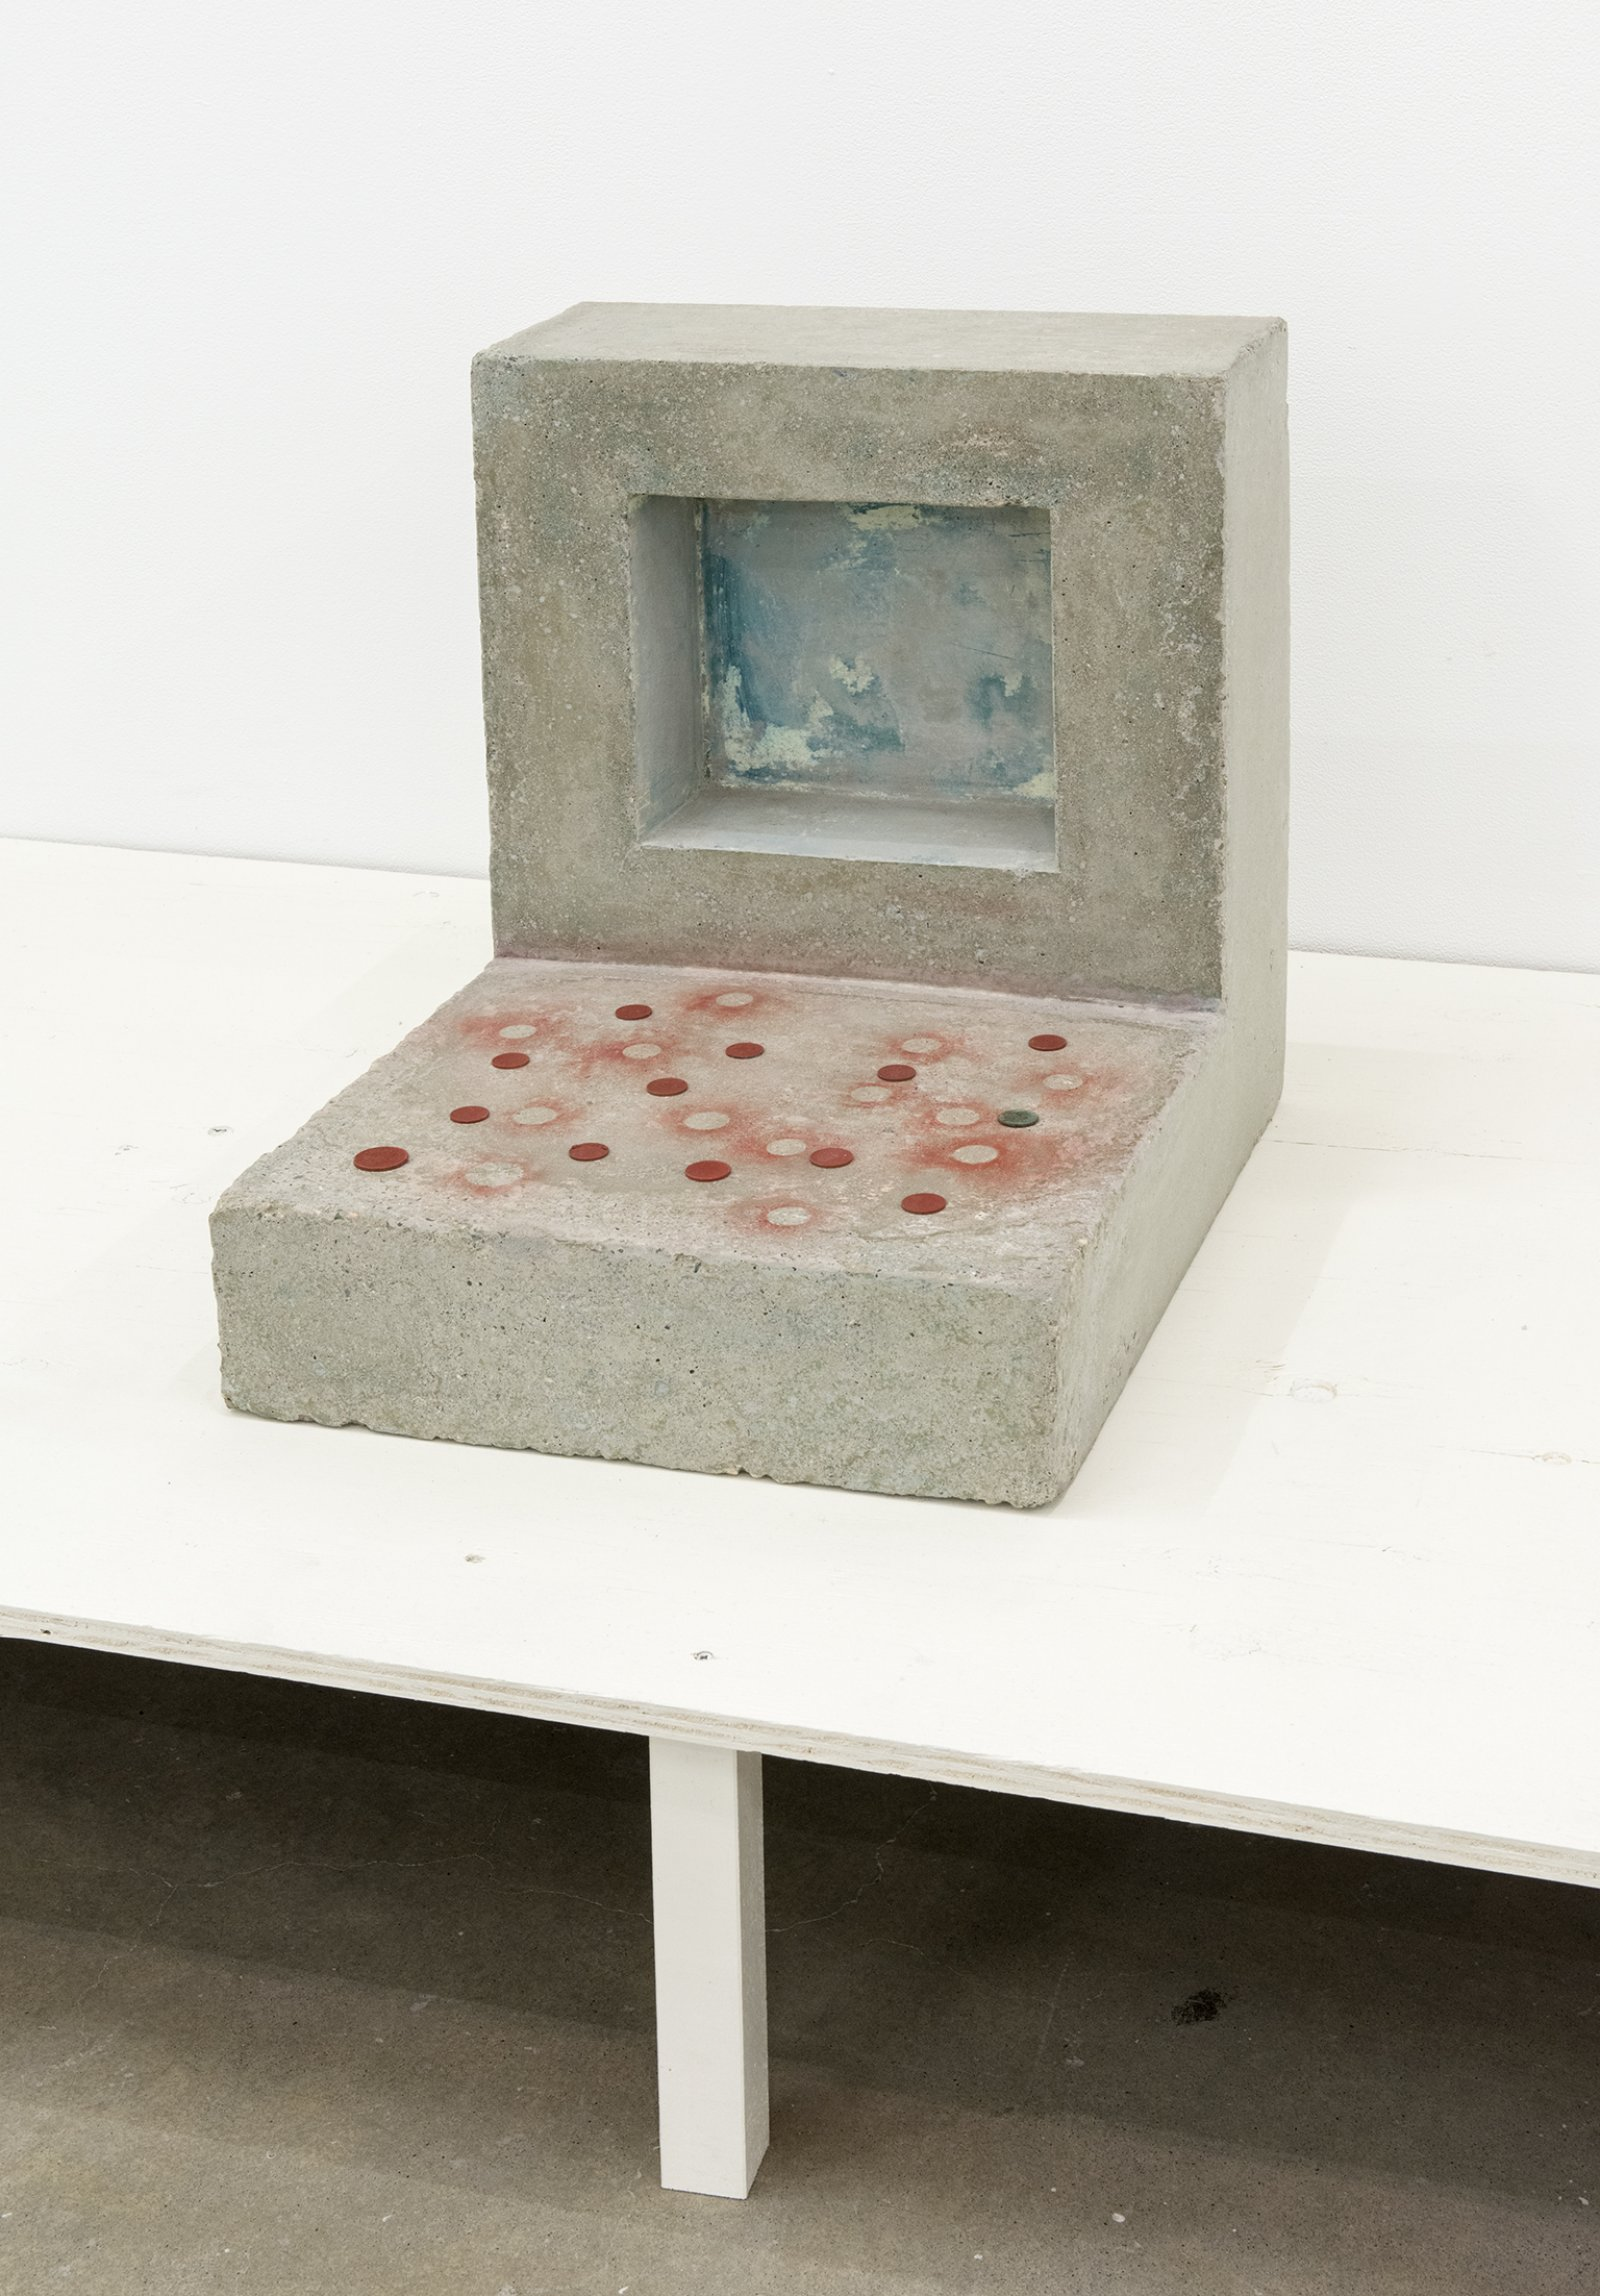 Gareth Moore, PC-01, 2013, concrete, coins, paint, verdigris, 19 x 16 x 20 in. (47 x 41 x 50 cm)   by Ashes Withyman